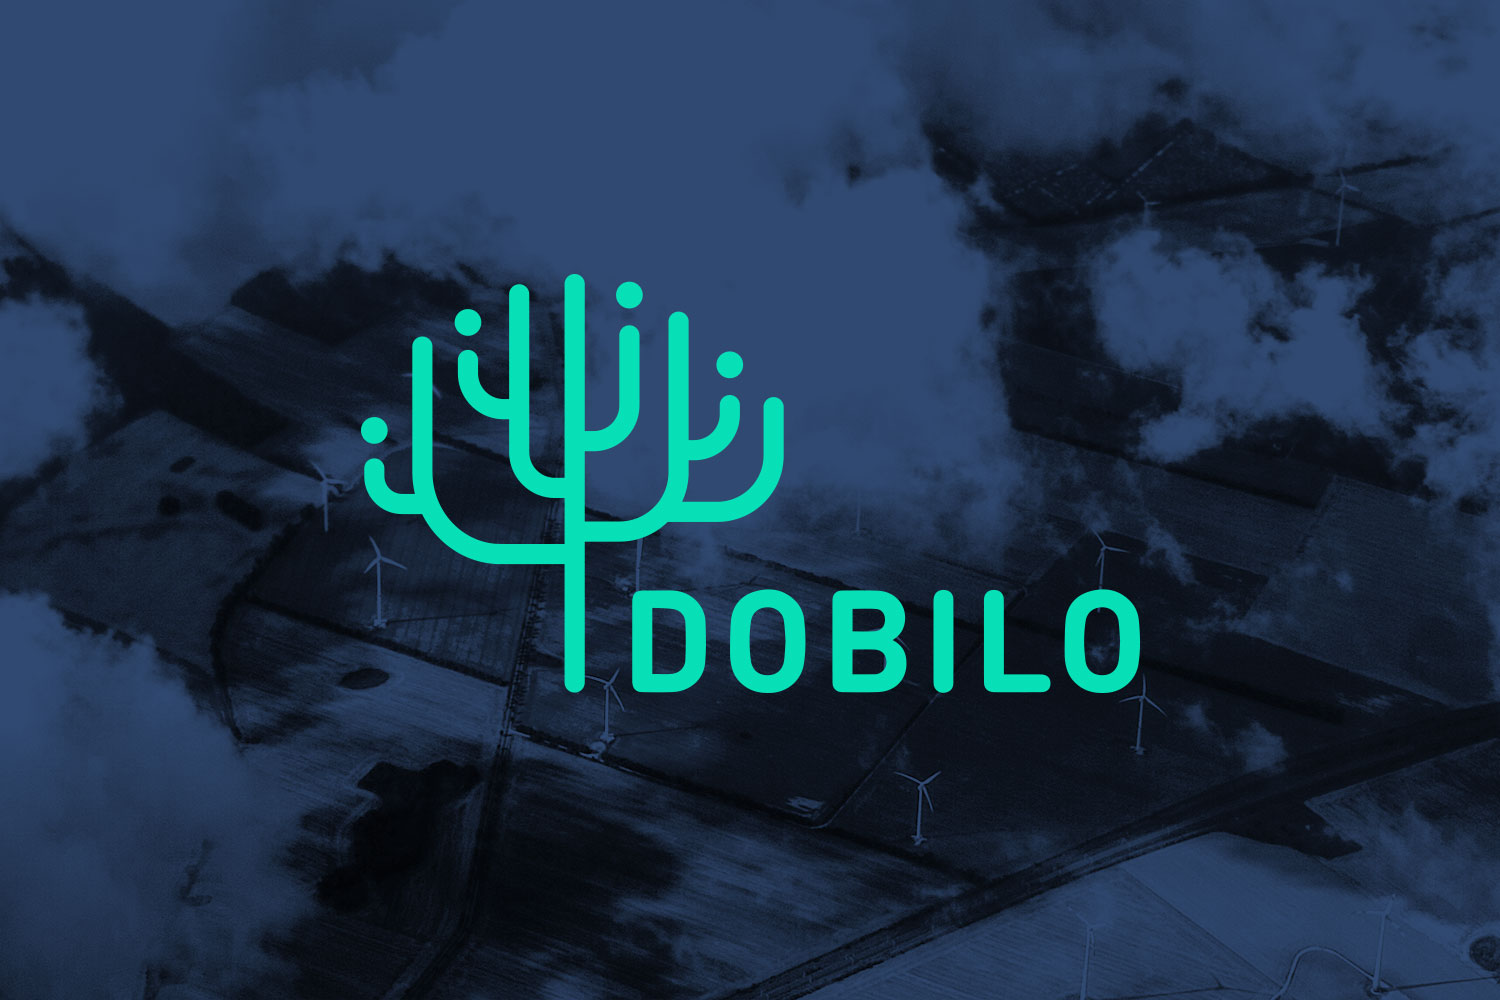 <em>Dobilo</em> is an end-to-end supply chain network with sustainability as a core value. Dobilo's four founders are represented by the four fruits in the tree.